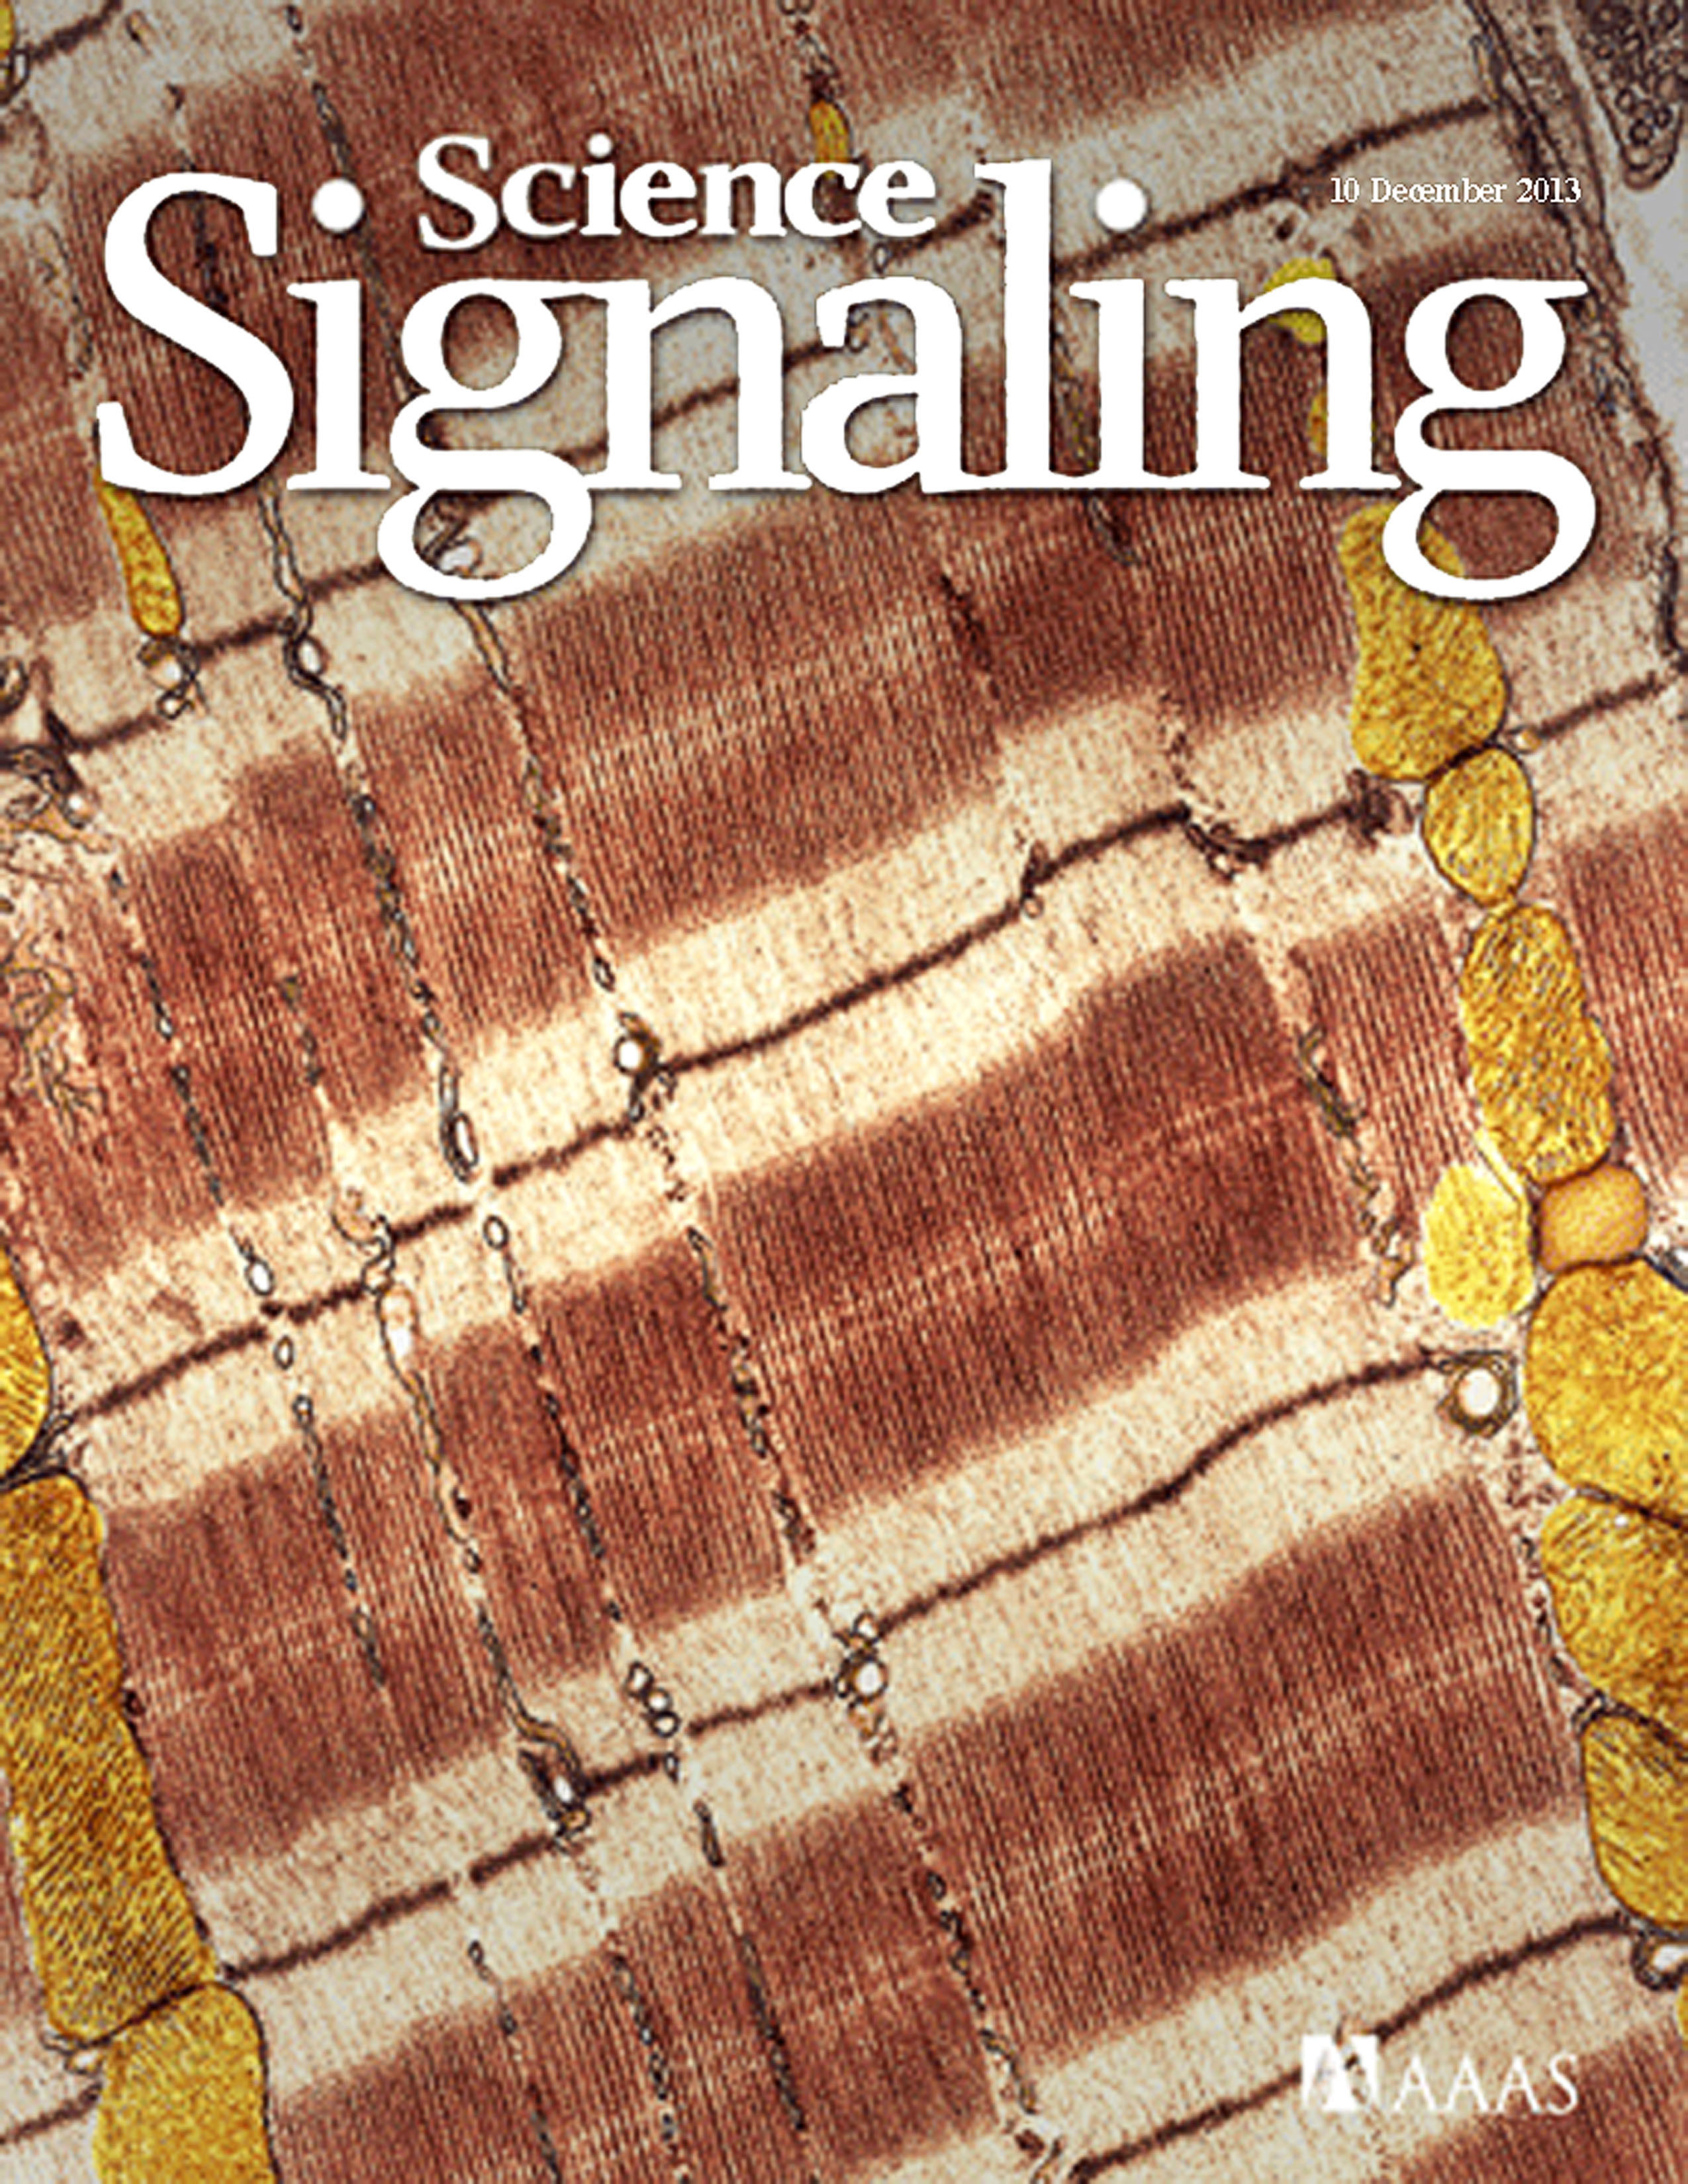 Science Signaling December 2013